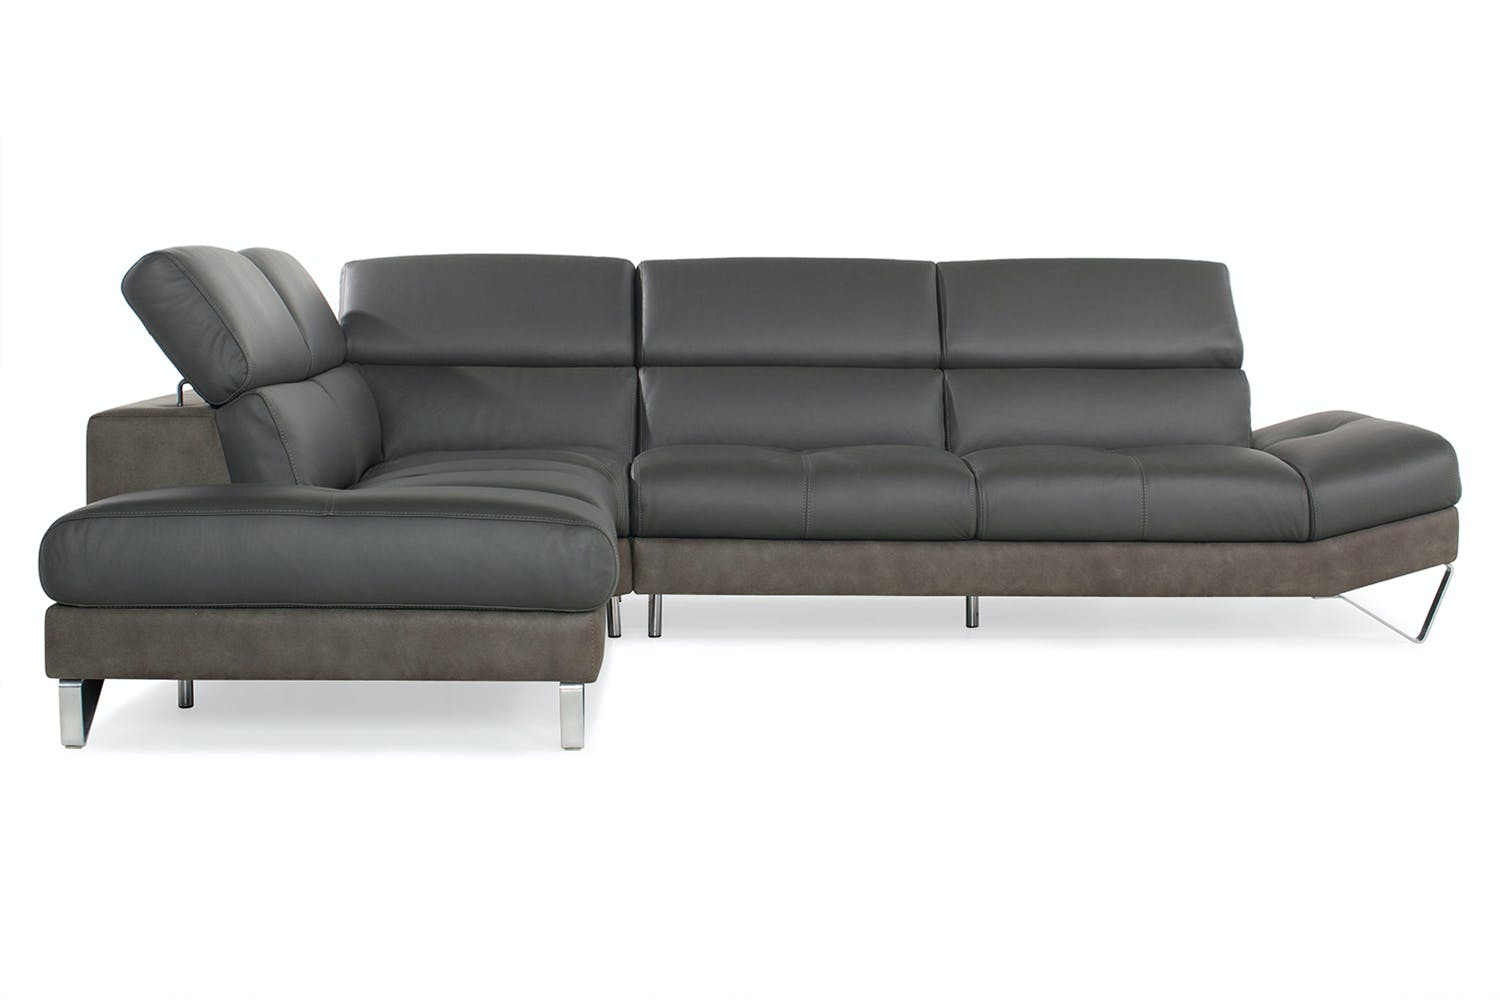 Wondrous Miro Chaise Sofa Side Options Evergreenethics Interior Chair Design Evergreenethicsorg